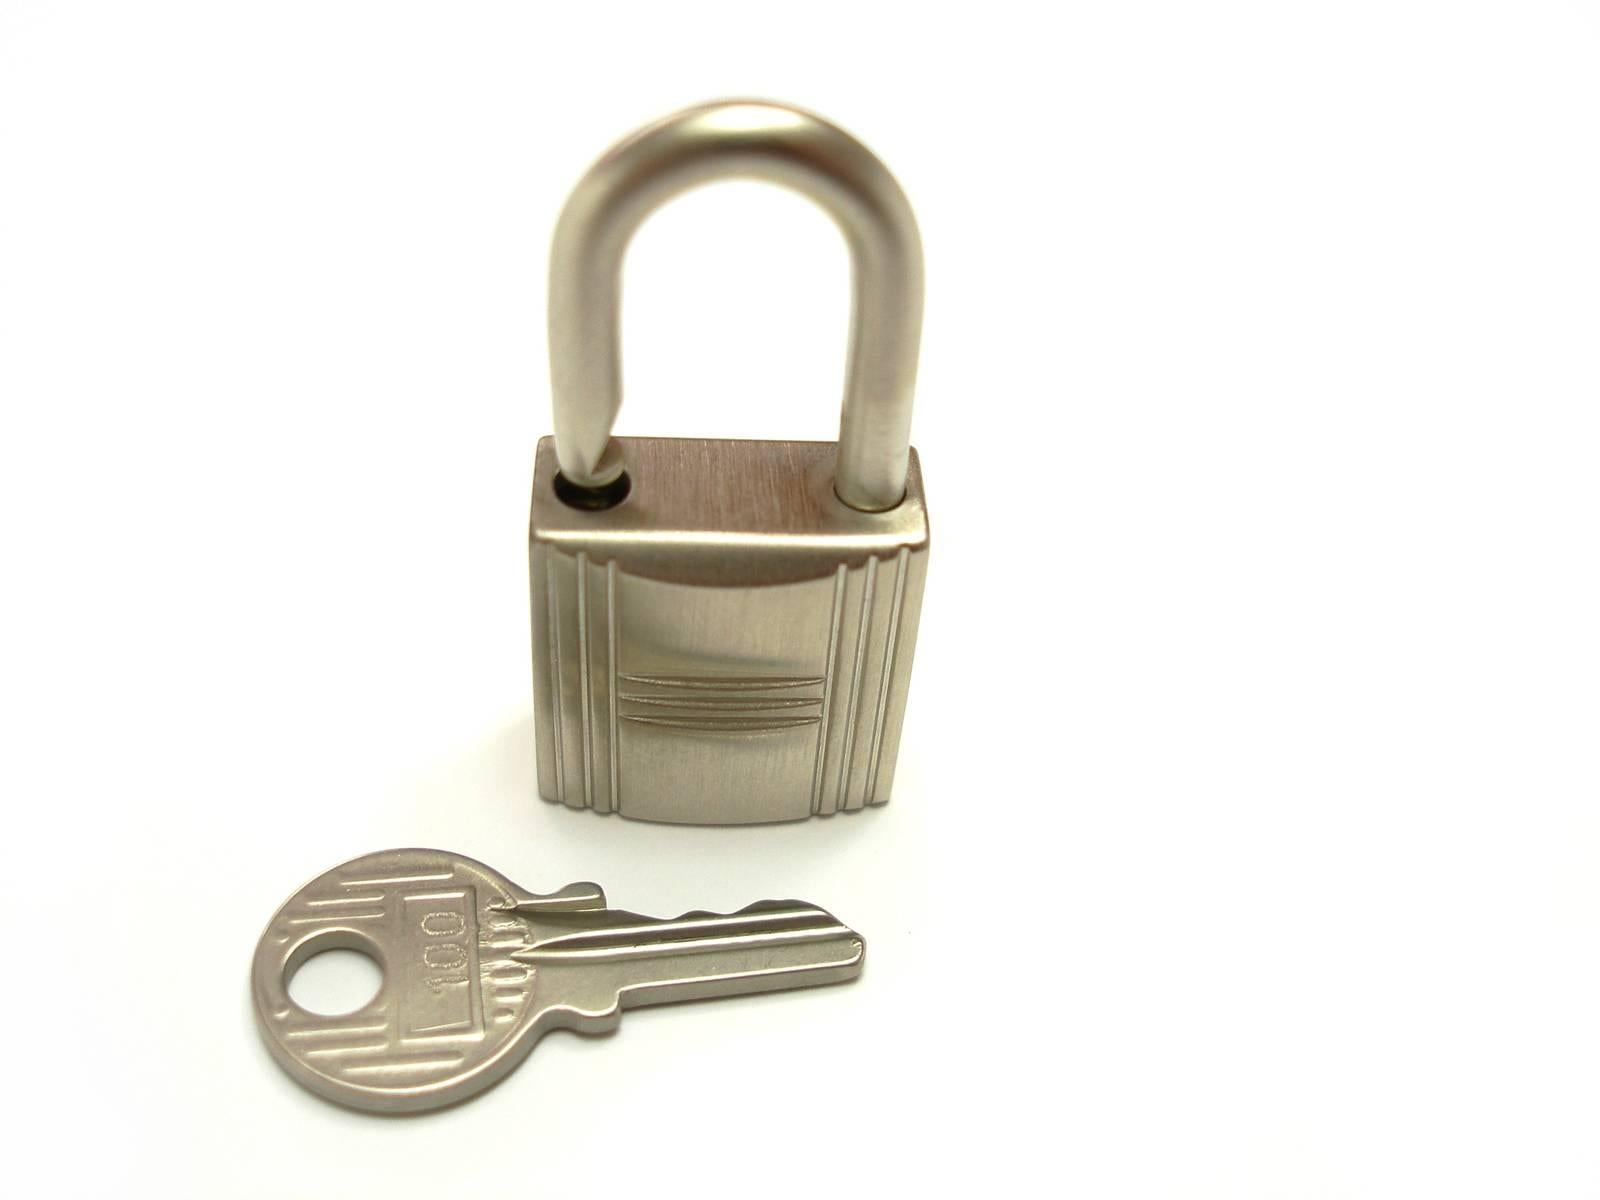 ... order hermès cadenas lock 2 keys for birkin or kelly bag brush finish  brand new 3b023 81b791a3a1c0a